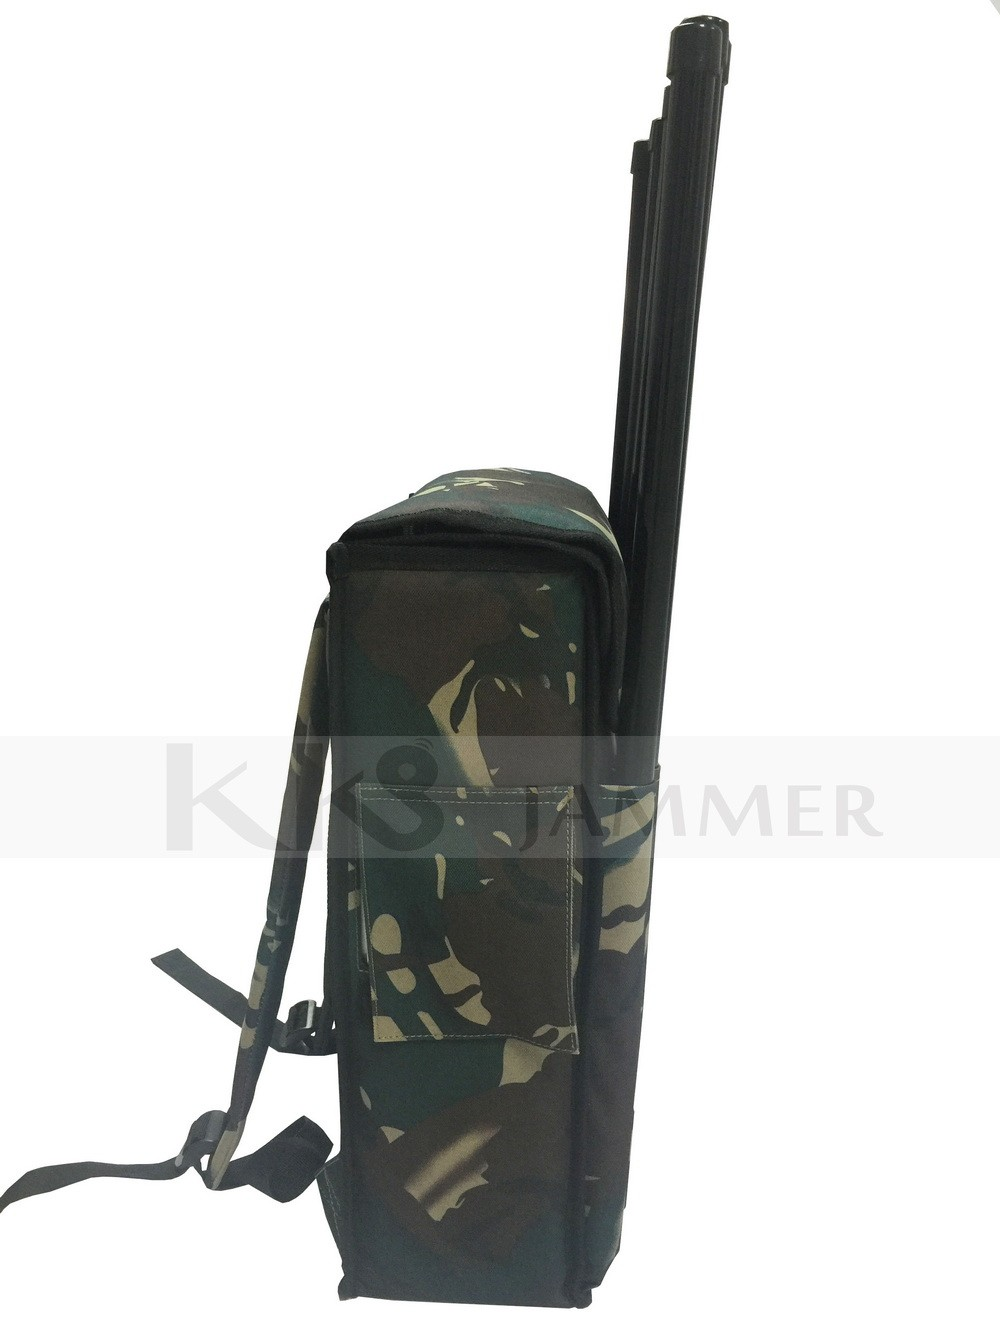 Backpack Portable Bomb Jammer/ IED Jammer